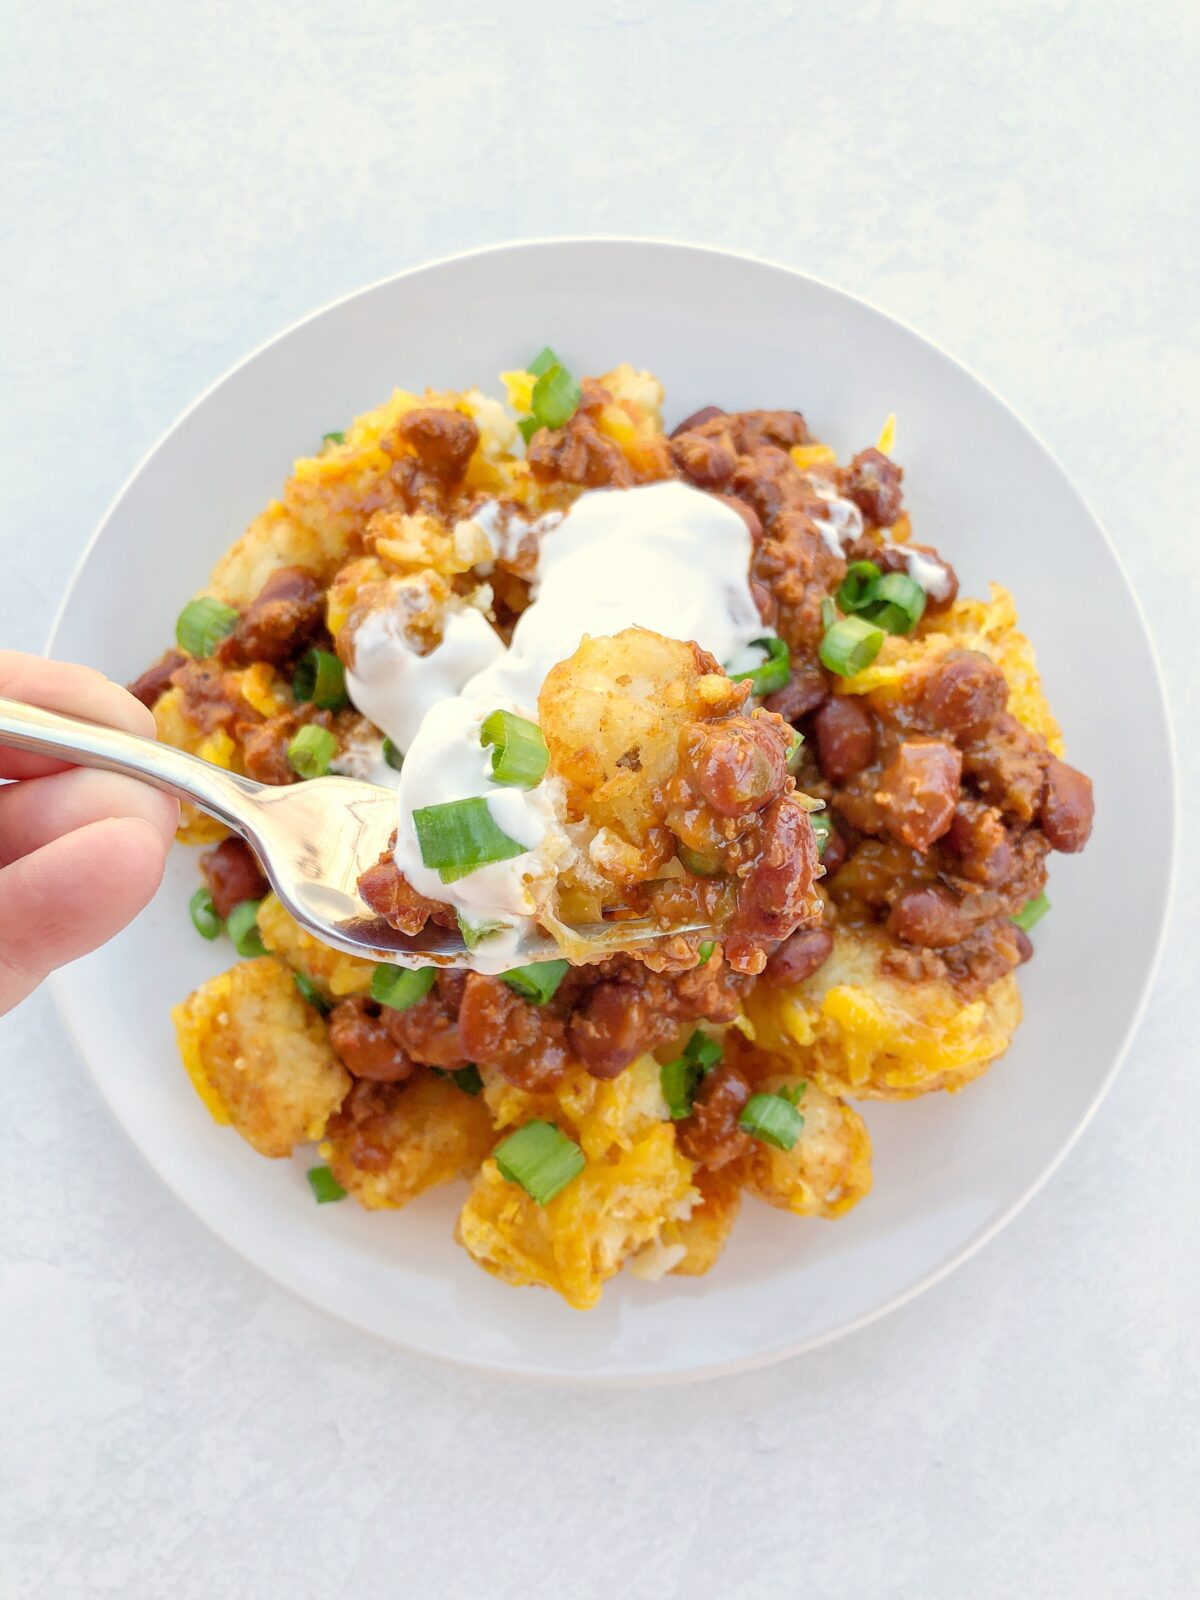 Tater Tot Nachos with dairy free cheese, chili, and sour cream